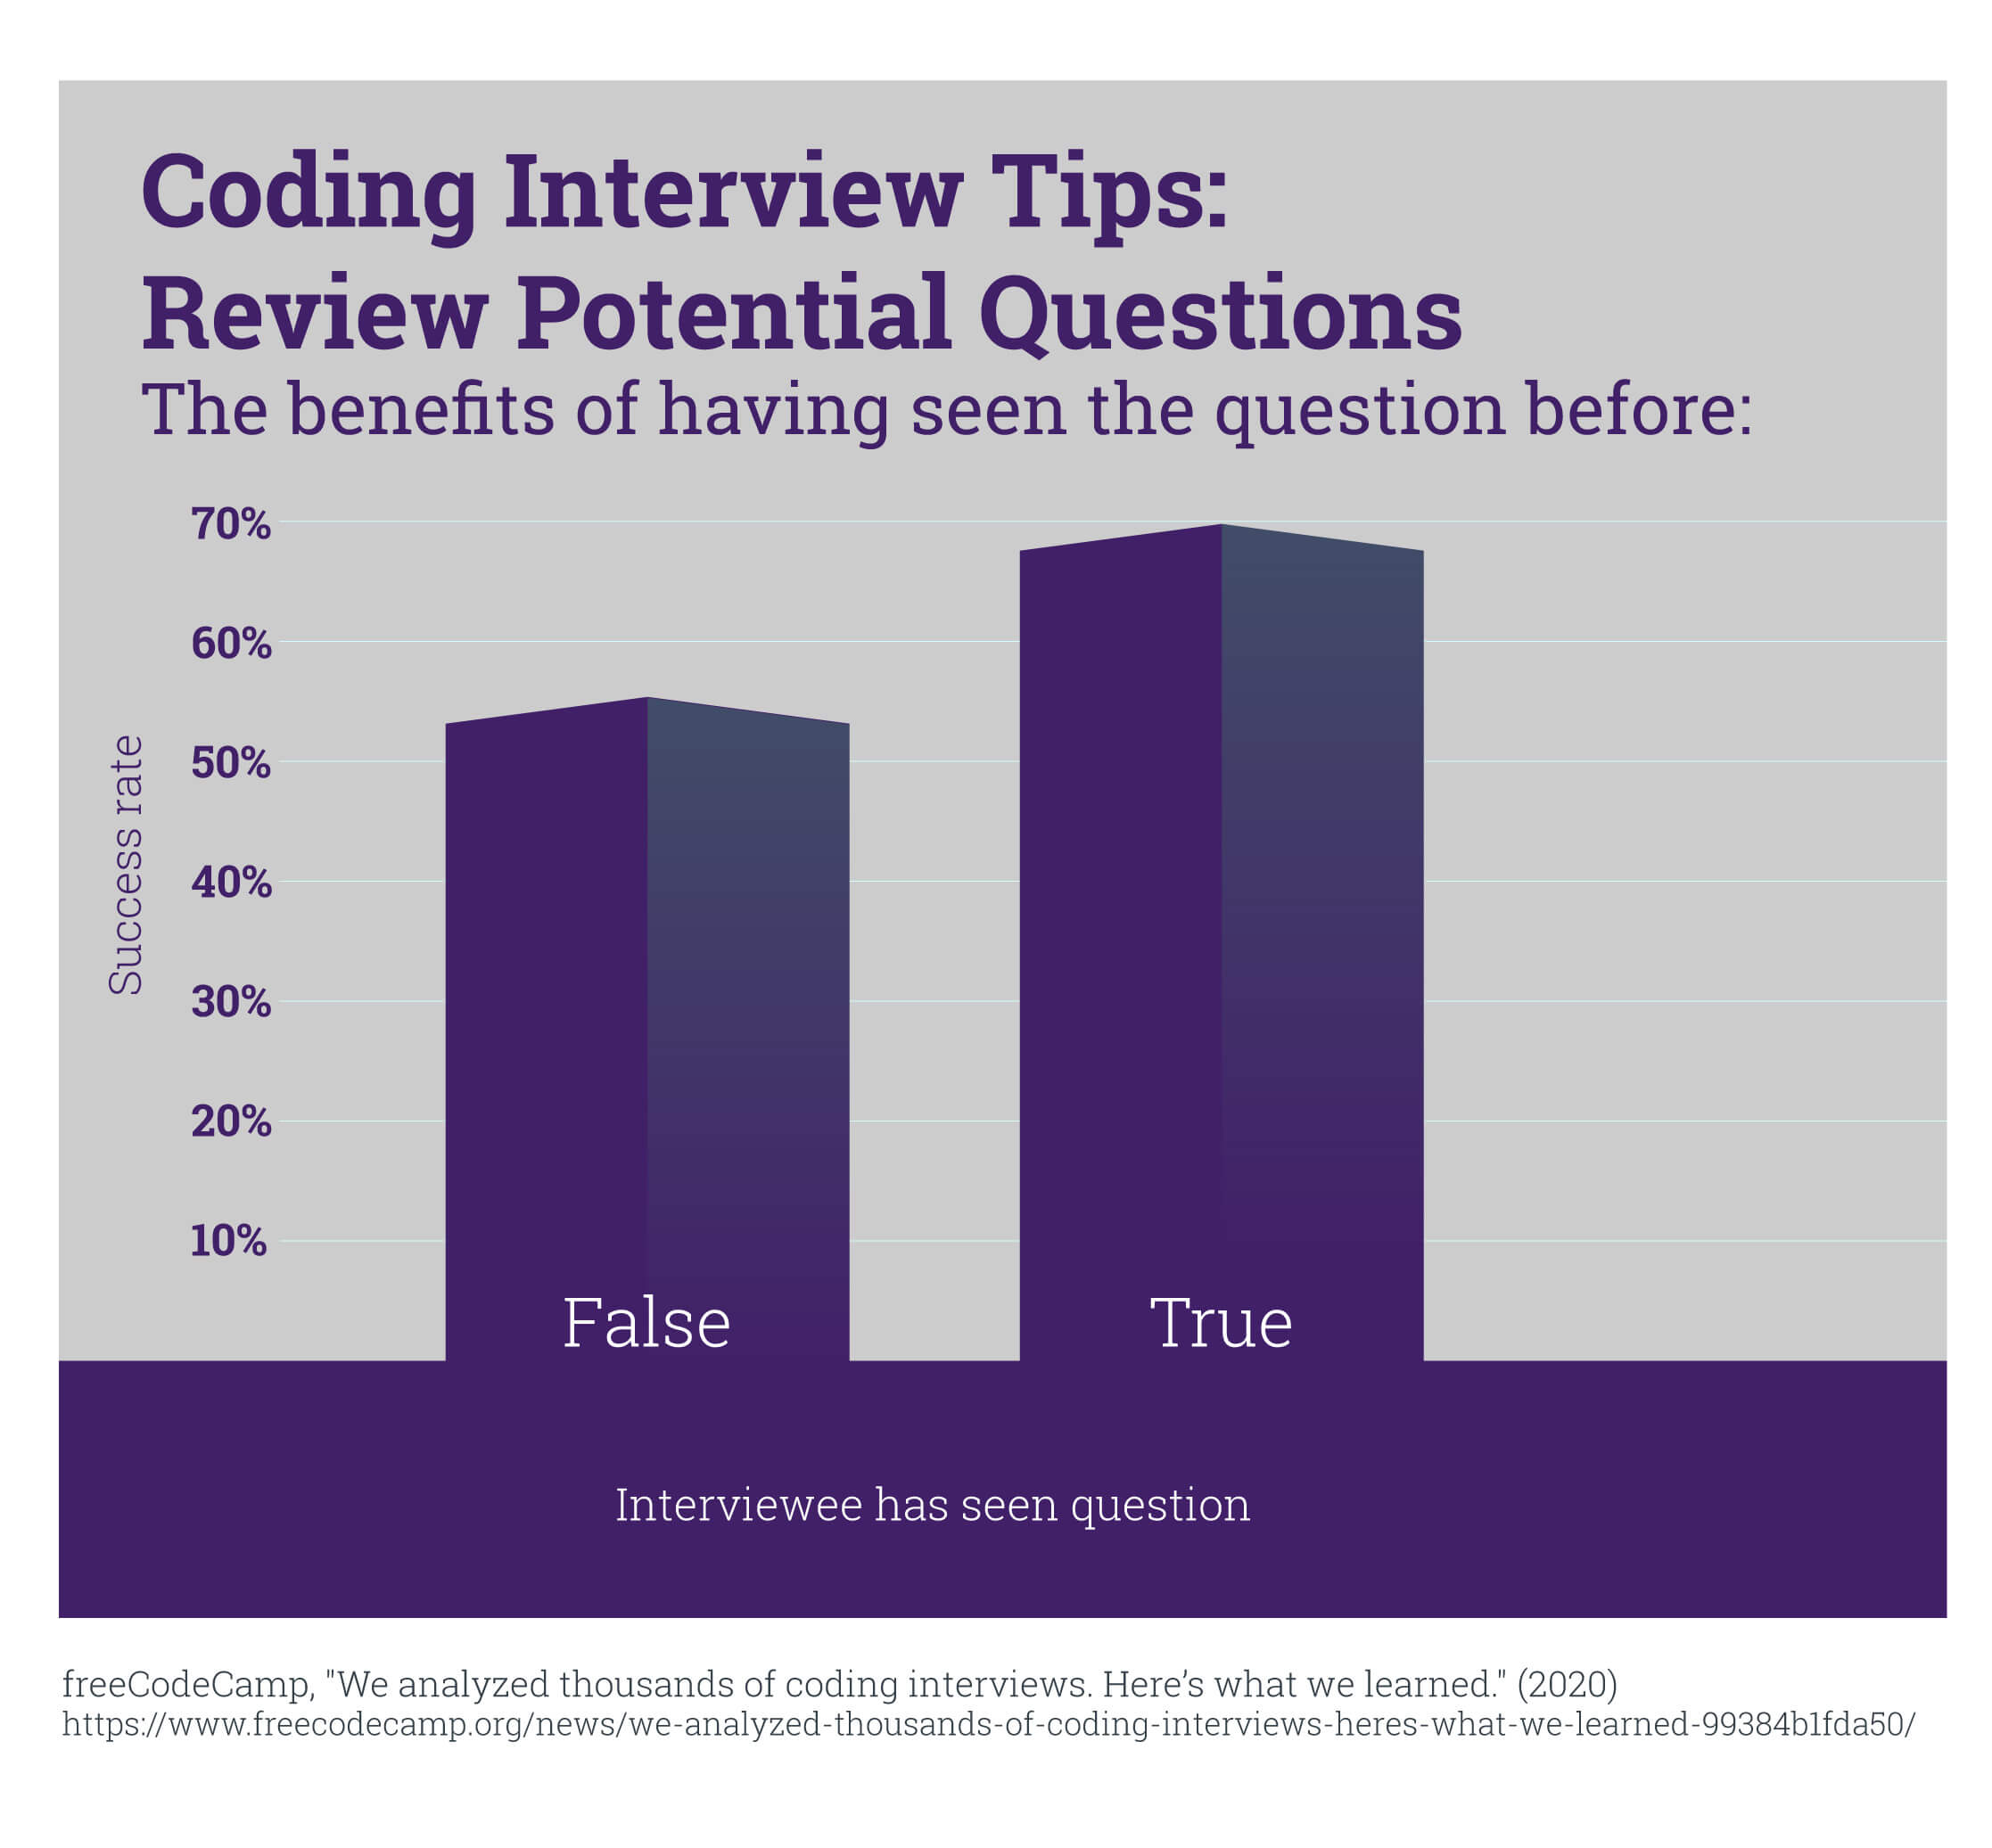 A chart that shows the interview benefits of having seen coding questions before